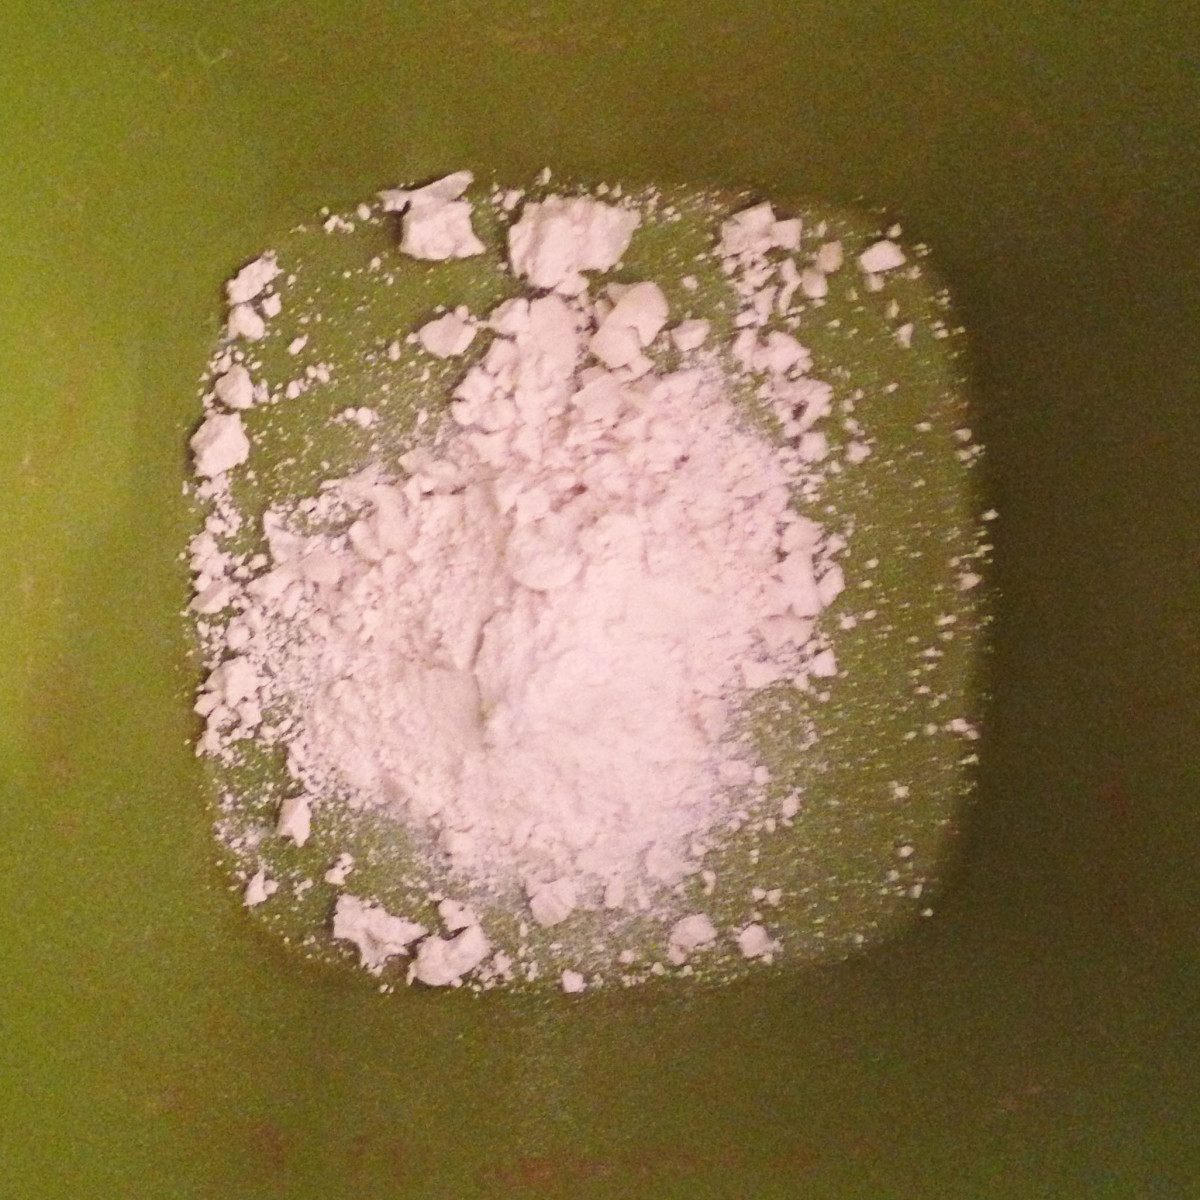 Crushed Vitamin C Tablets